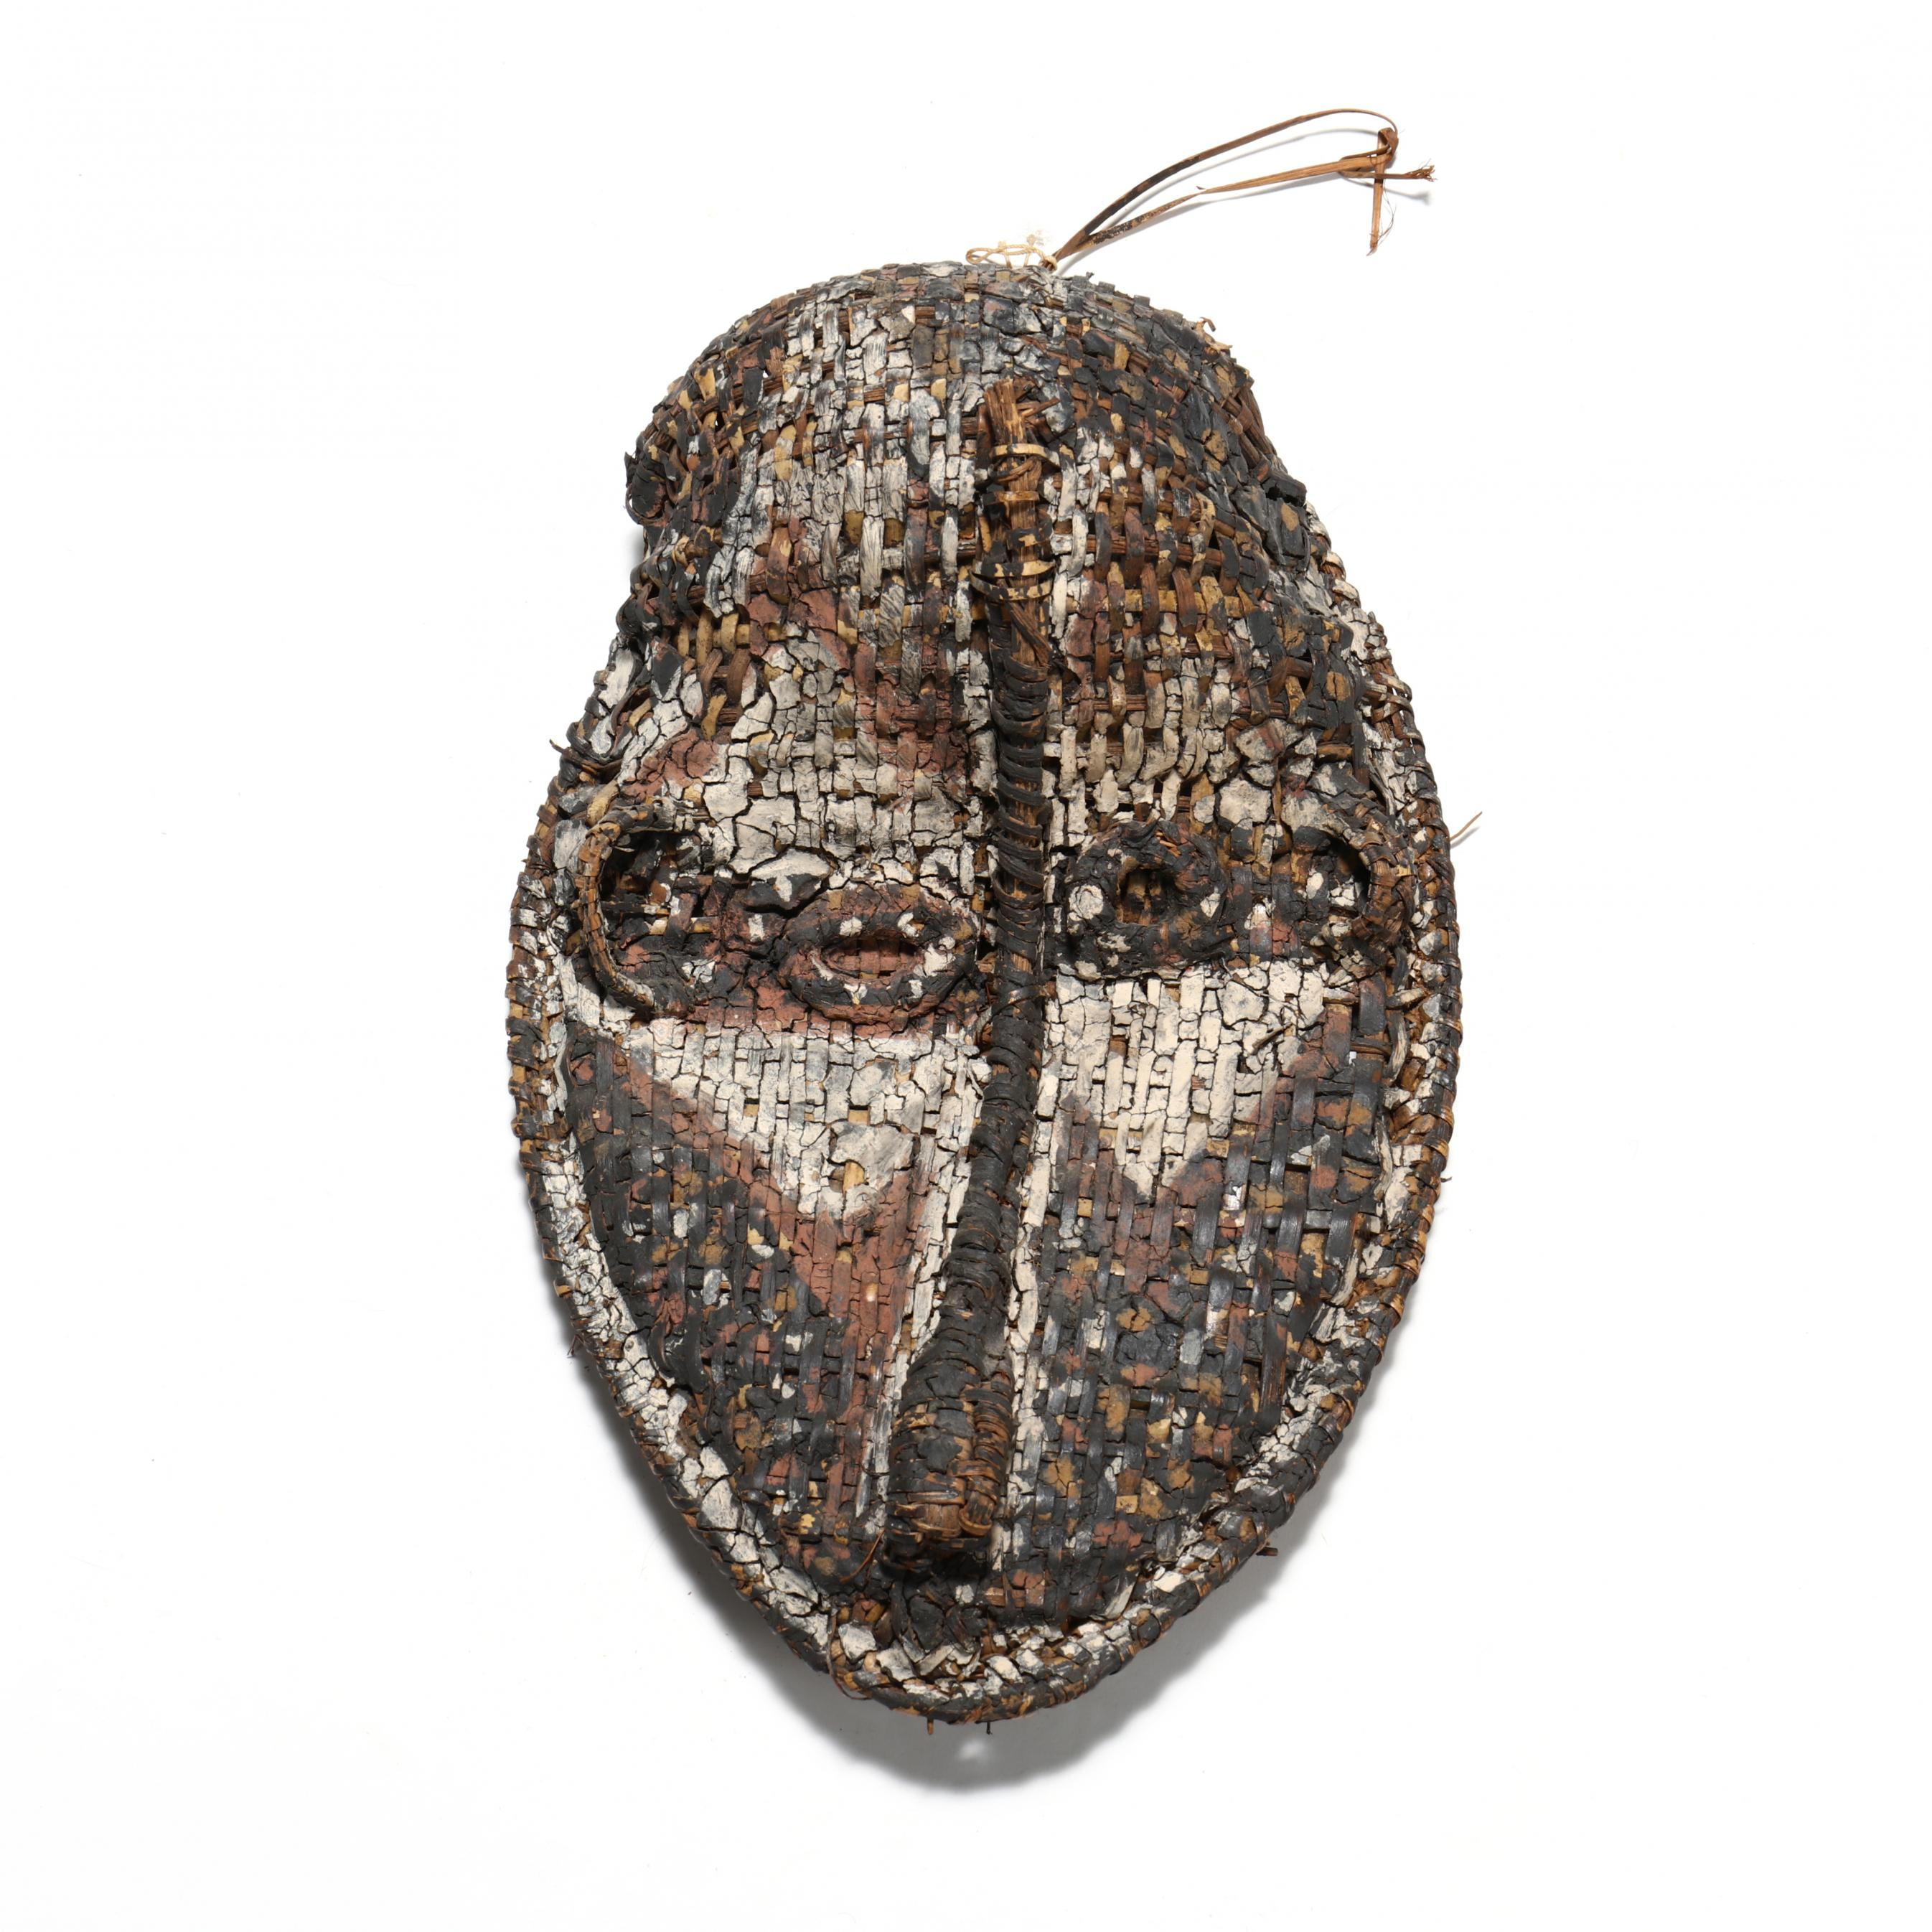 tribal-woven-grass-mask-likely-new-guinea